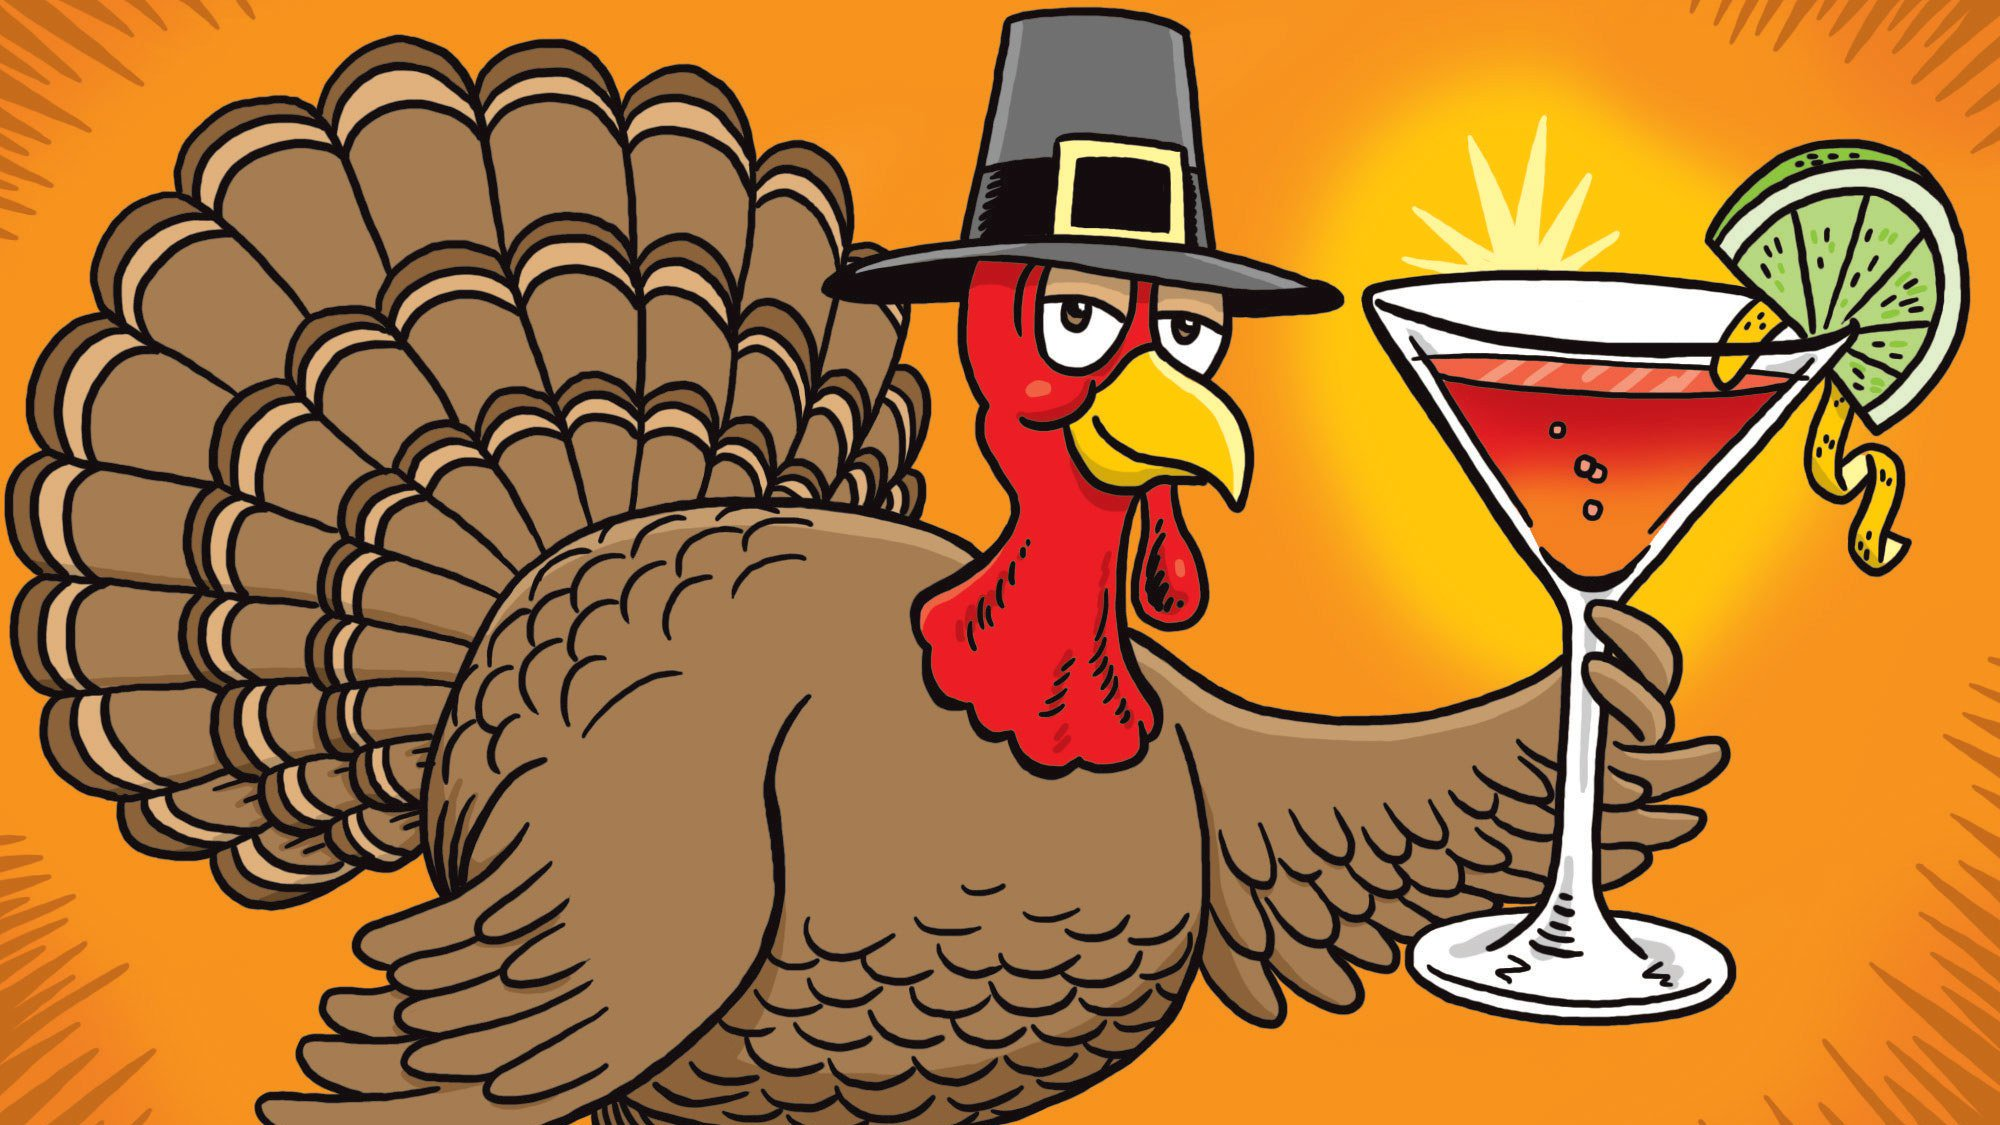 What bartenders drink on Thanksgiving—before, during, and after dinner https://t.co/wzzJkBCvZx https://t.co/z7LI9Rdr2h